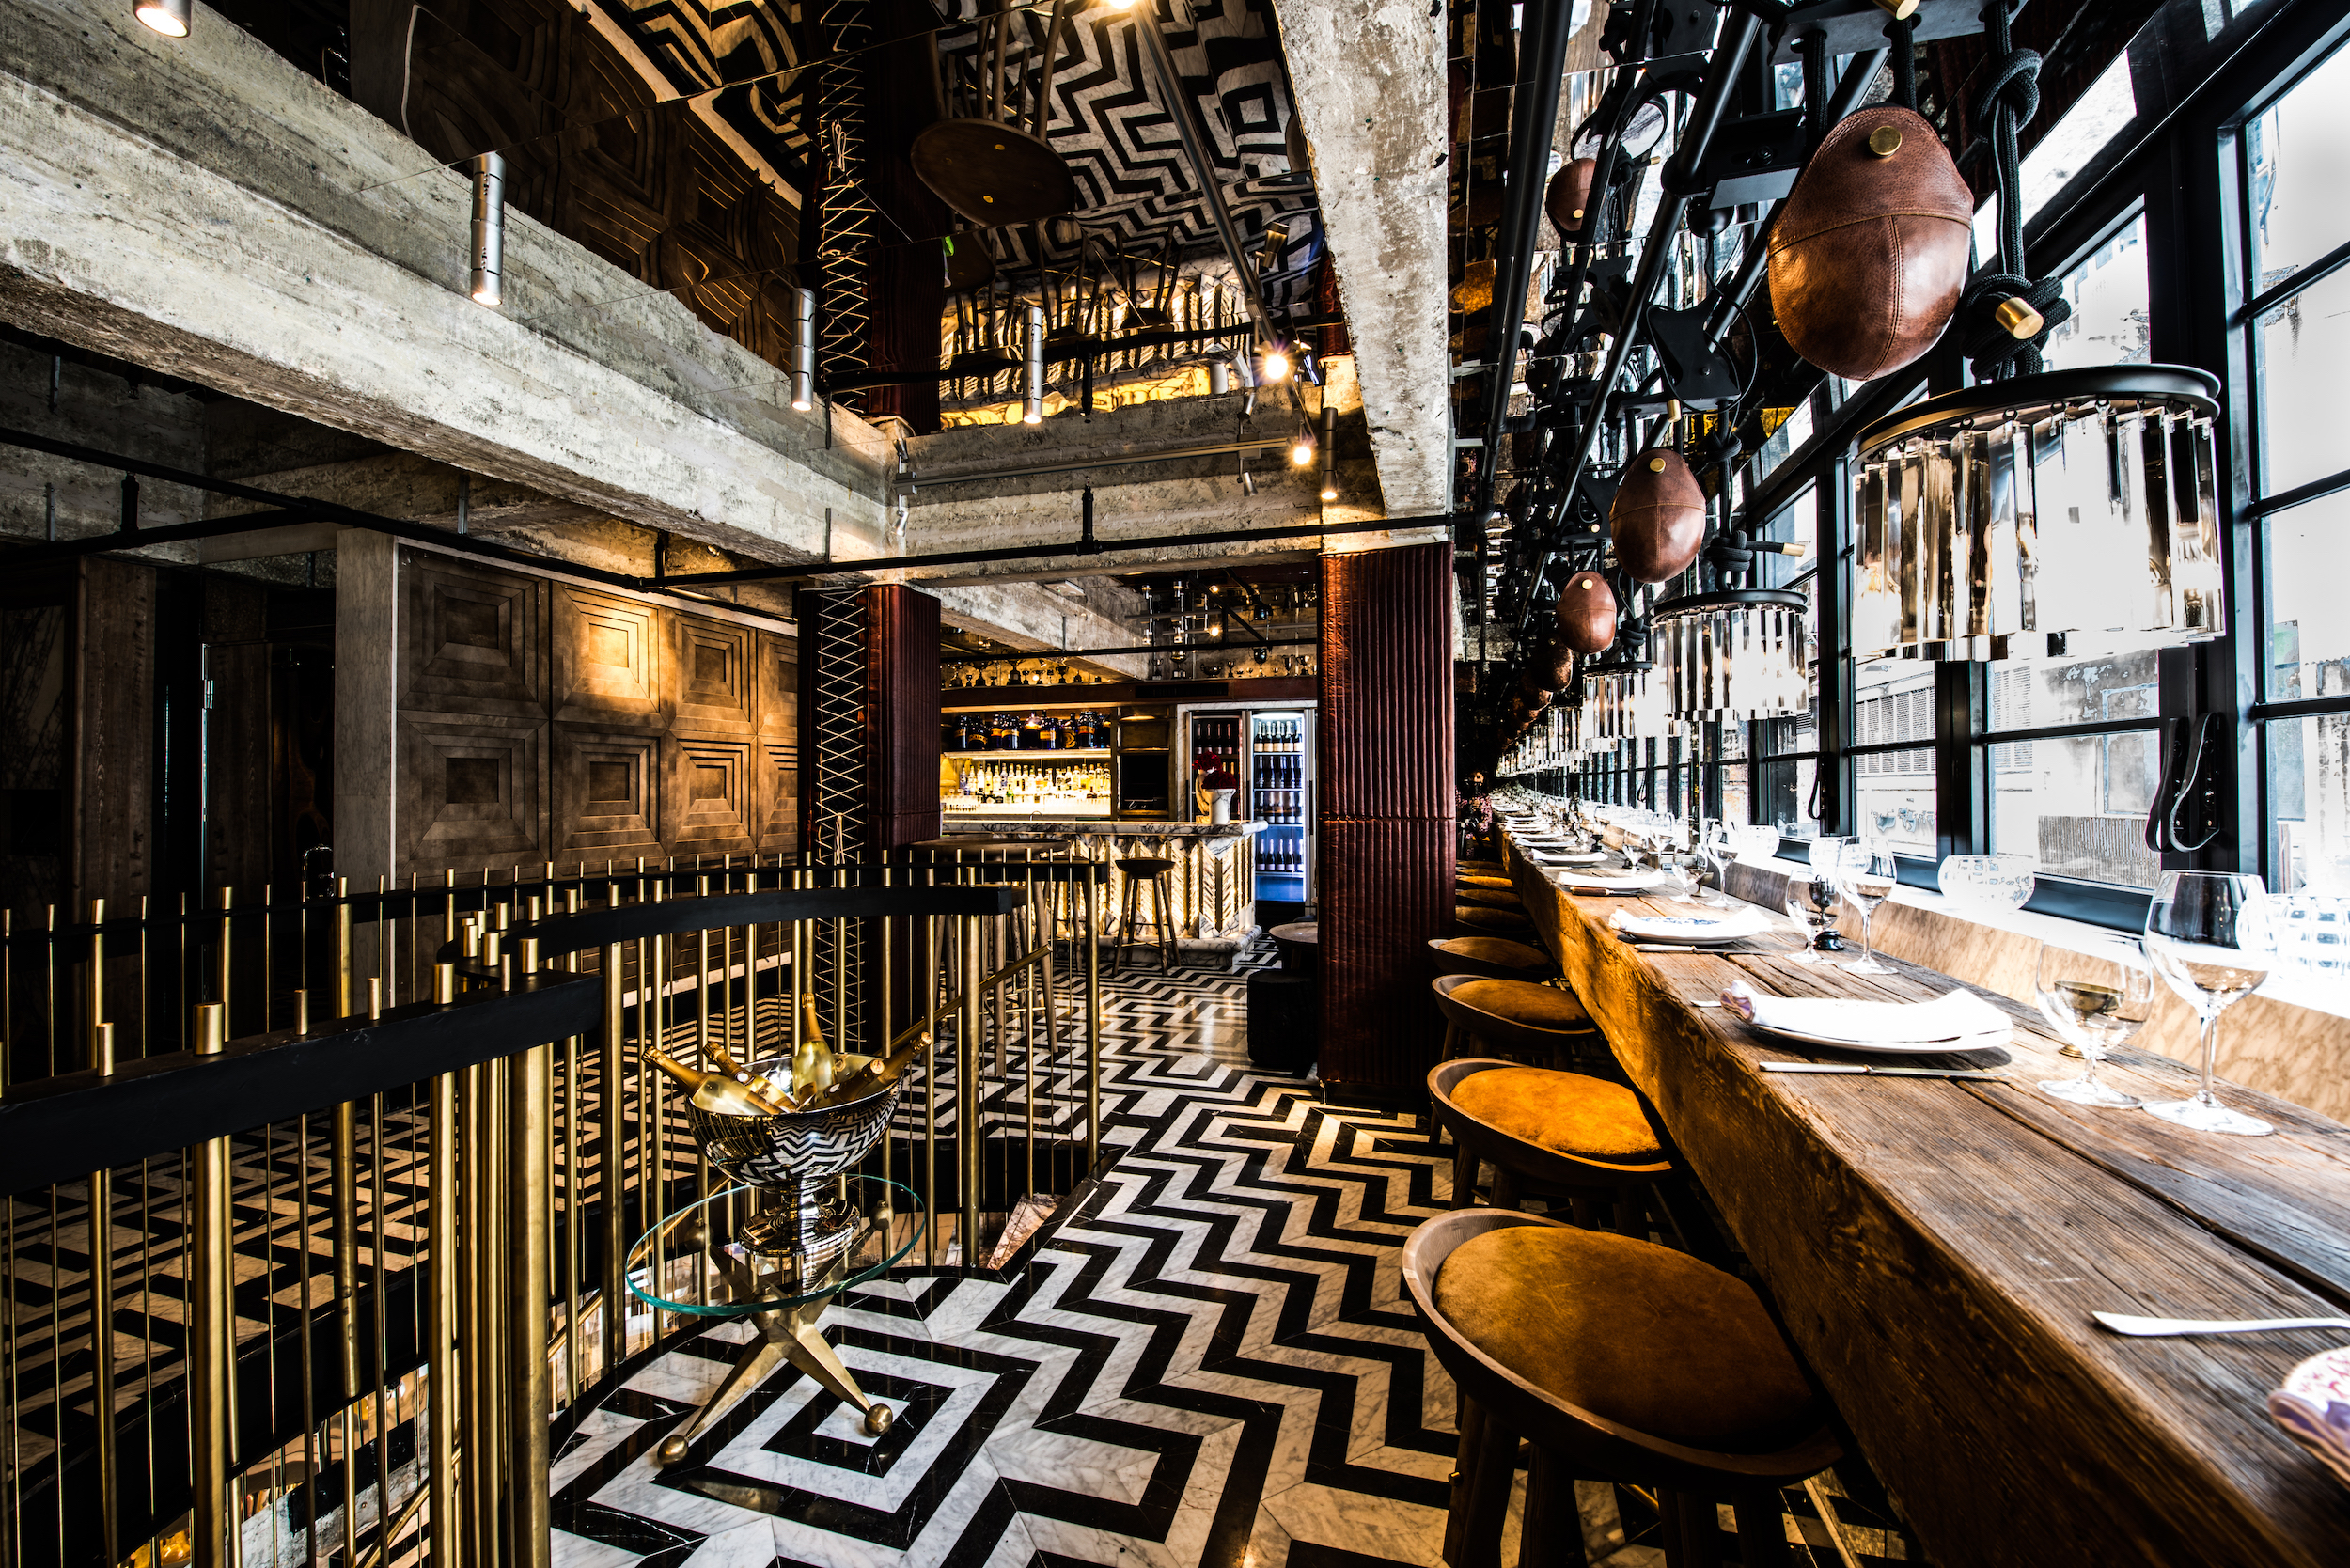 Review: Gough's on Gough is a design and food lover's paradise